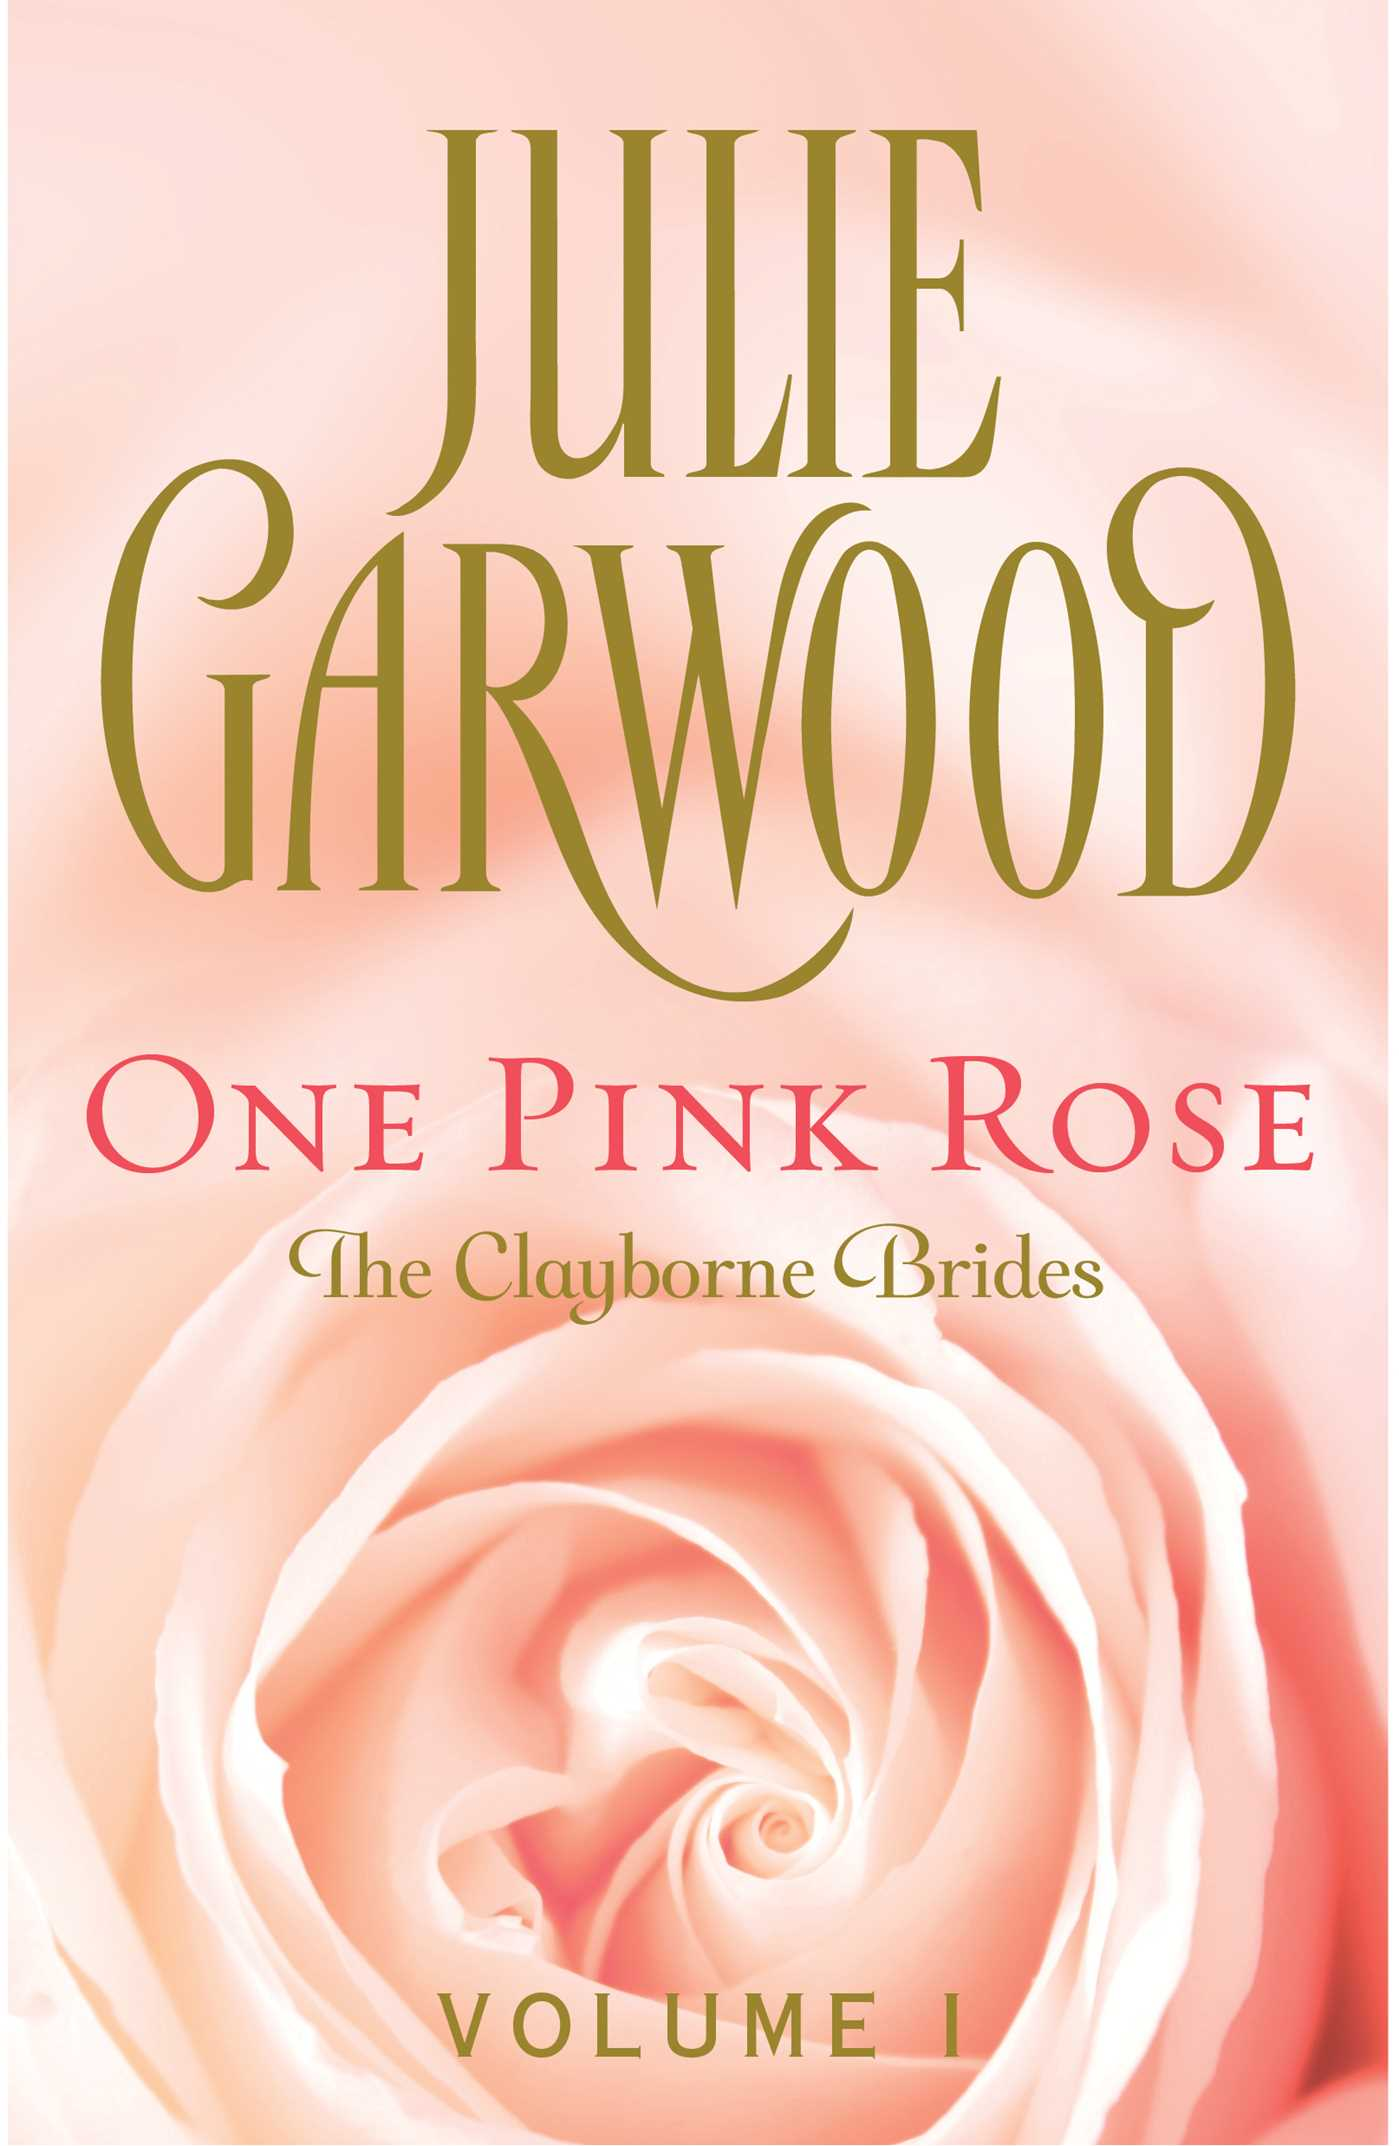 One Pink Rose book cover